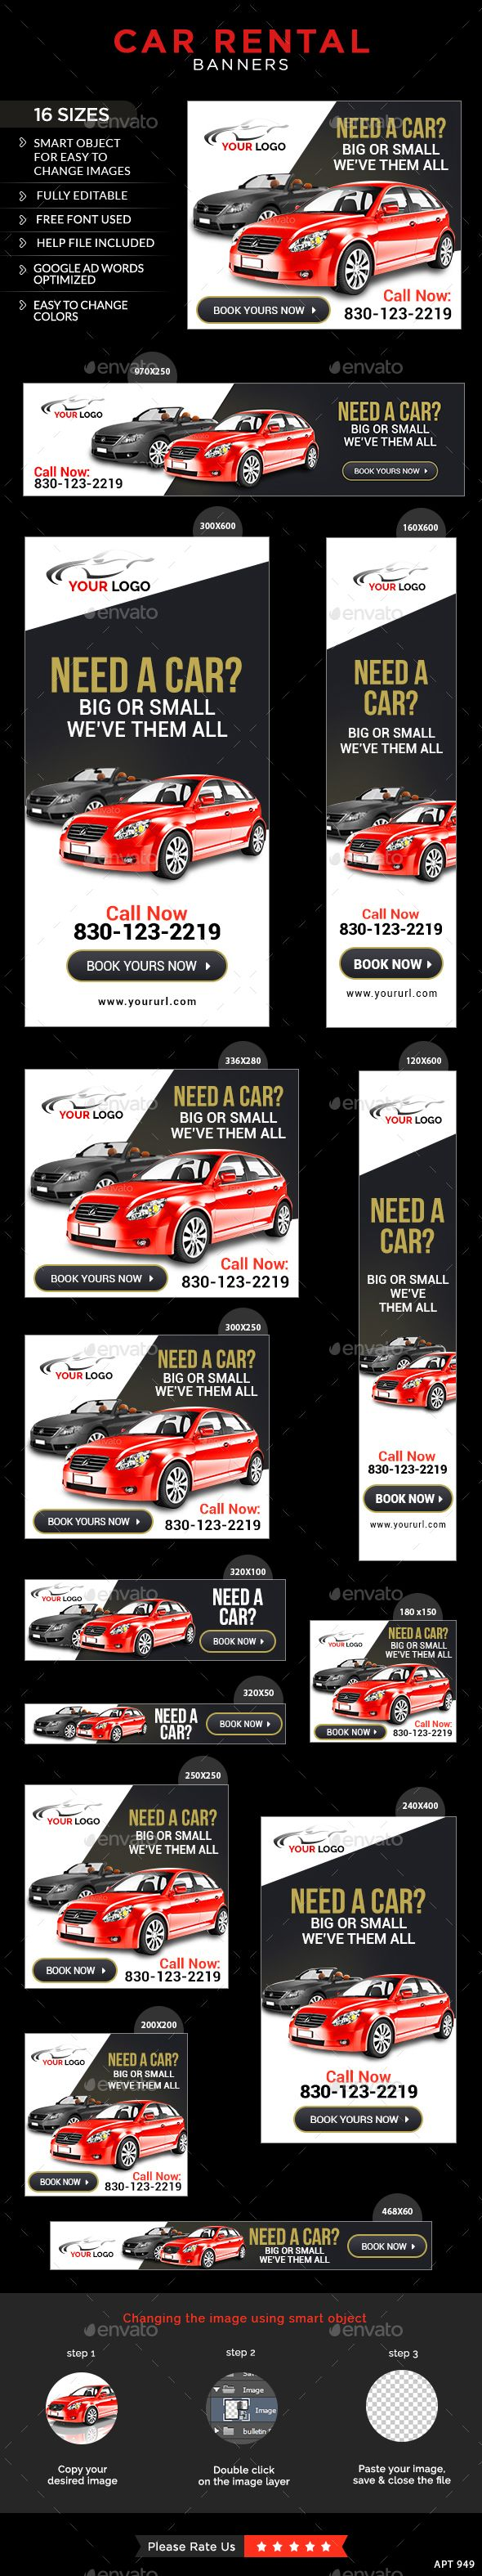 Car Rental Banners – Car Ad Template